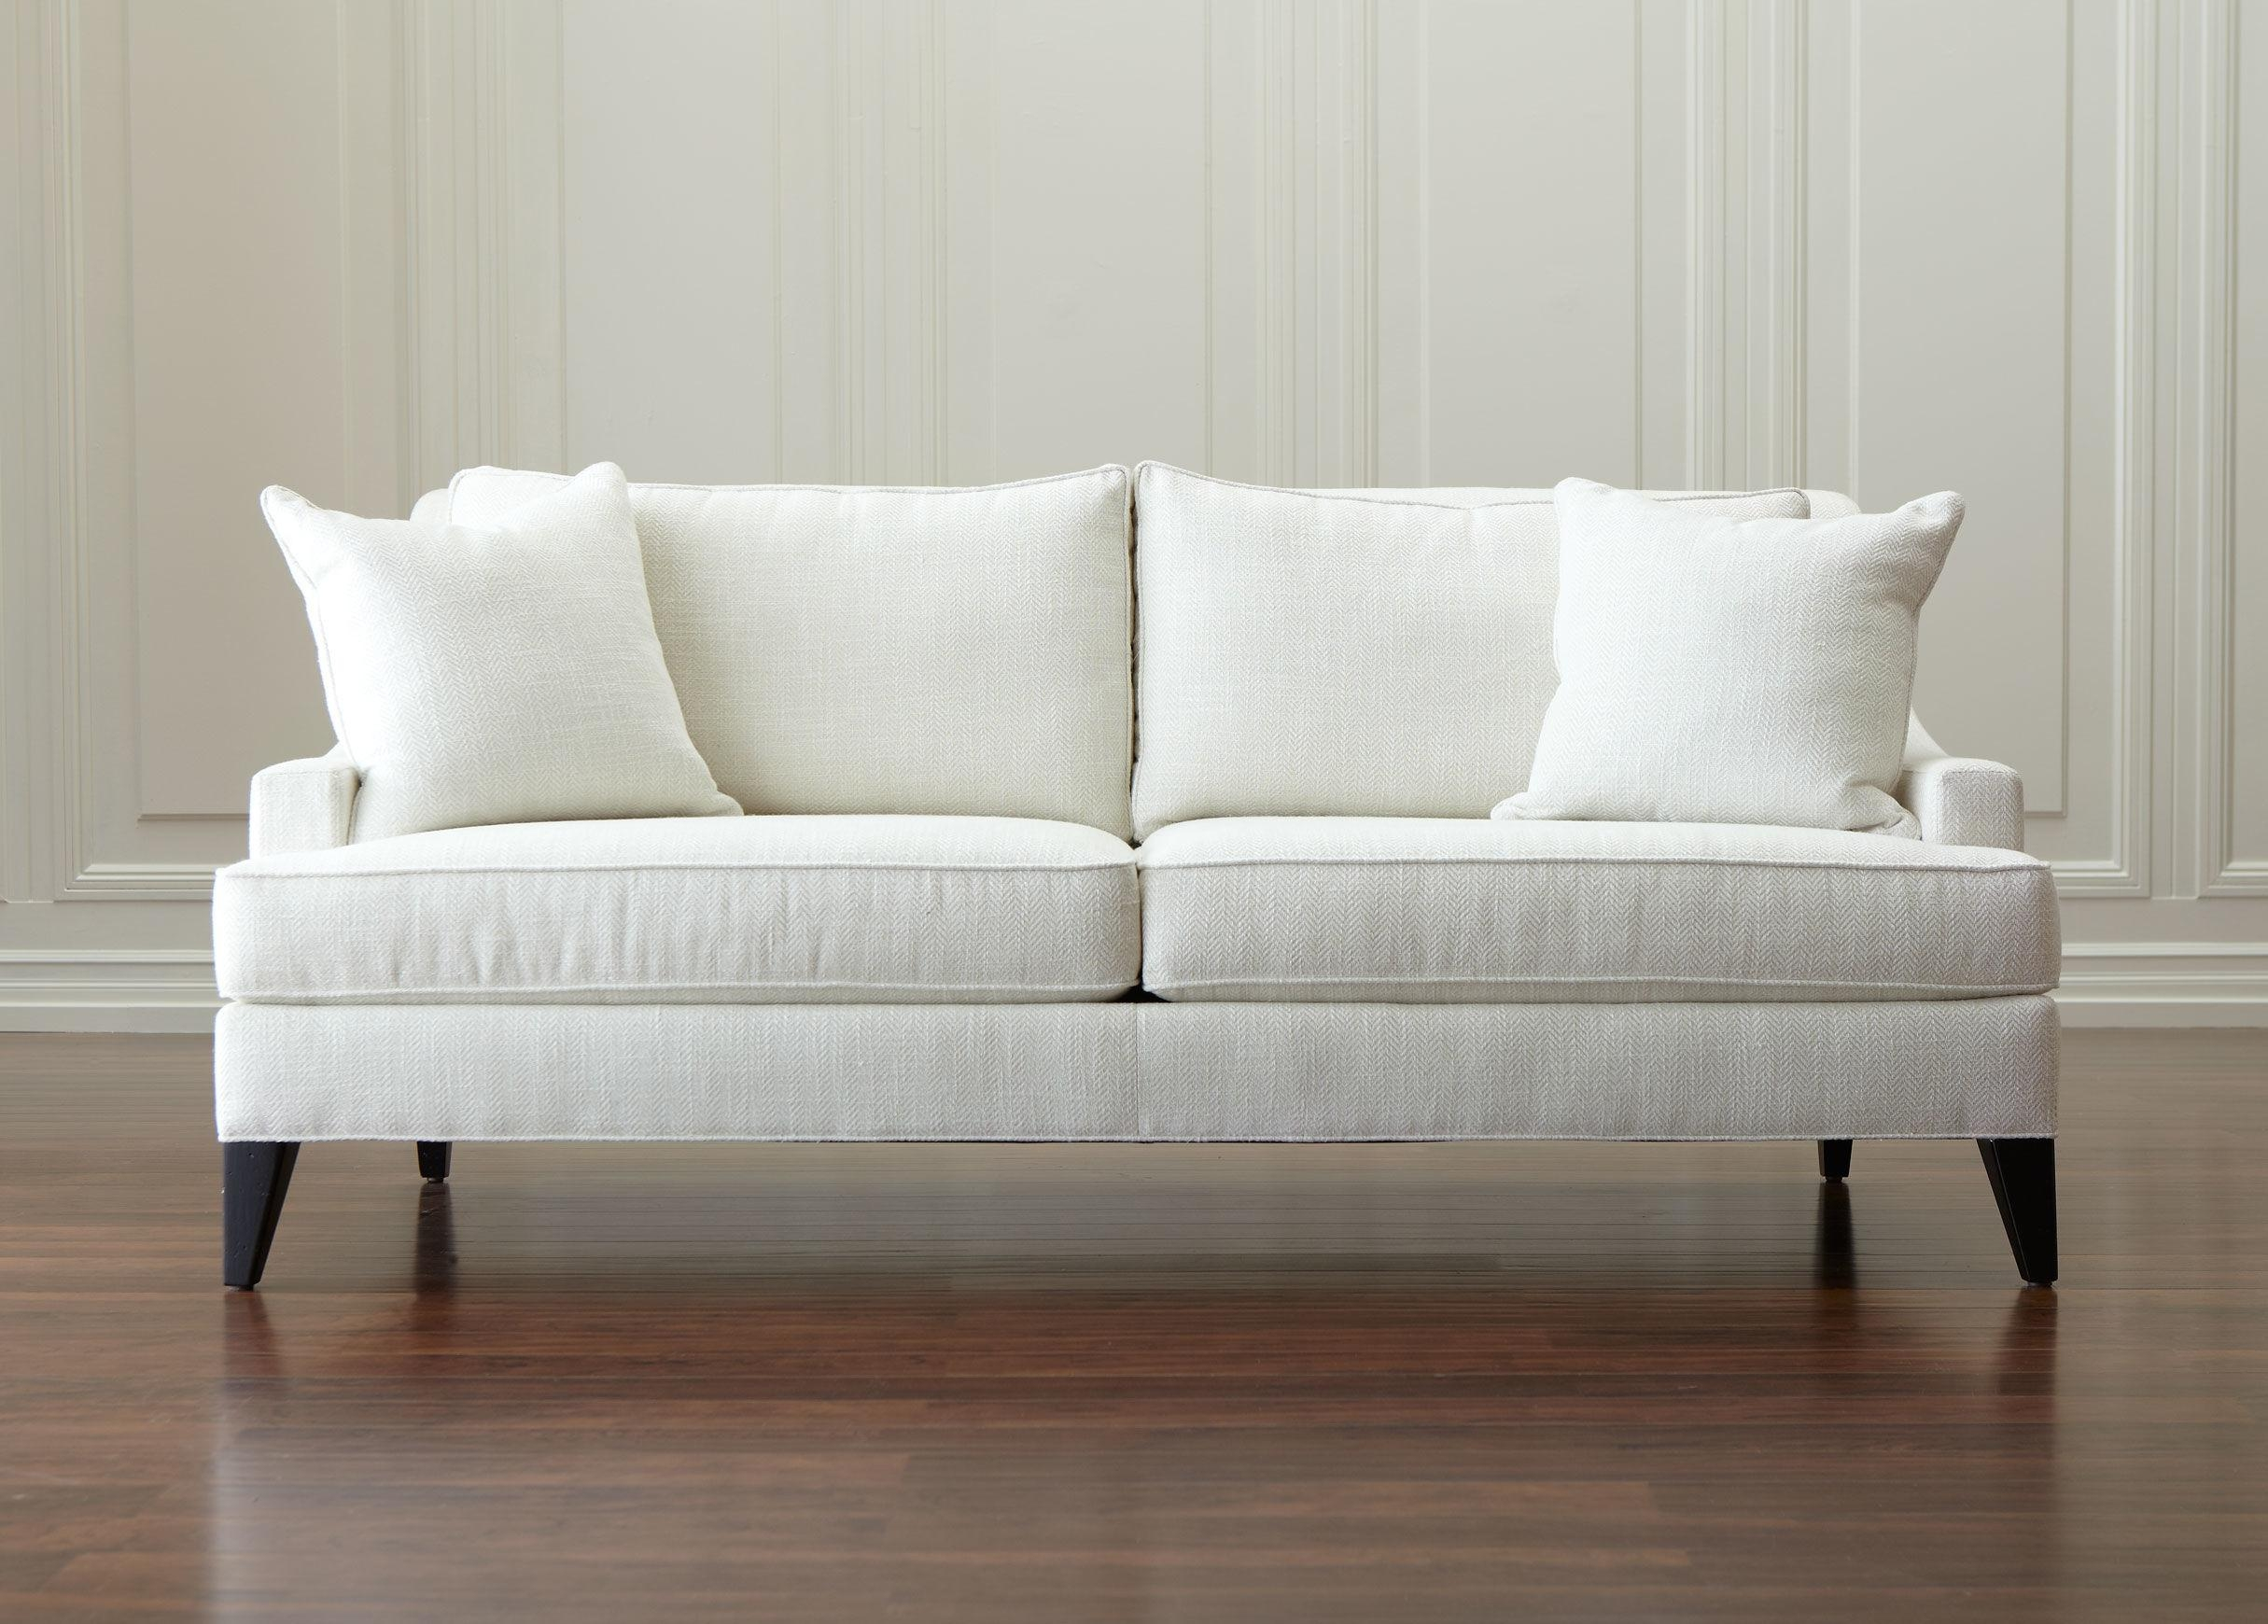 Best Ethan Allen Sleeper Sofas | Homesfeed Pertaining To Short Sofas (View 9 of 20)